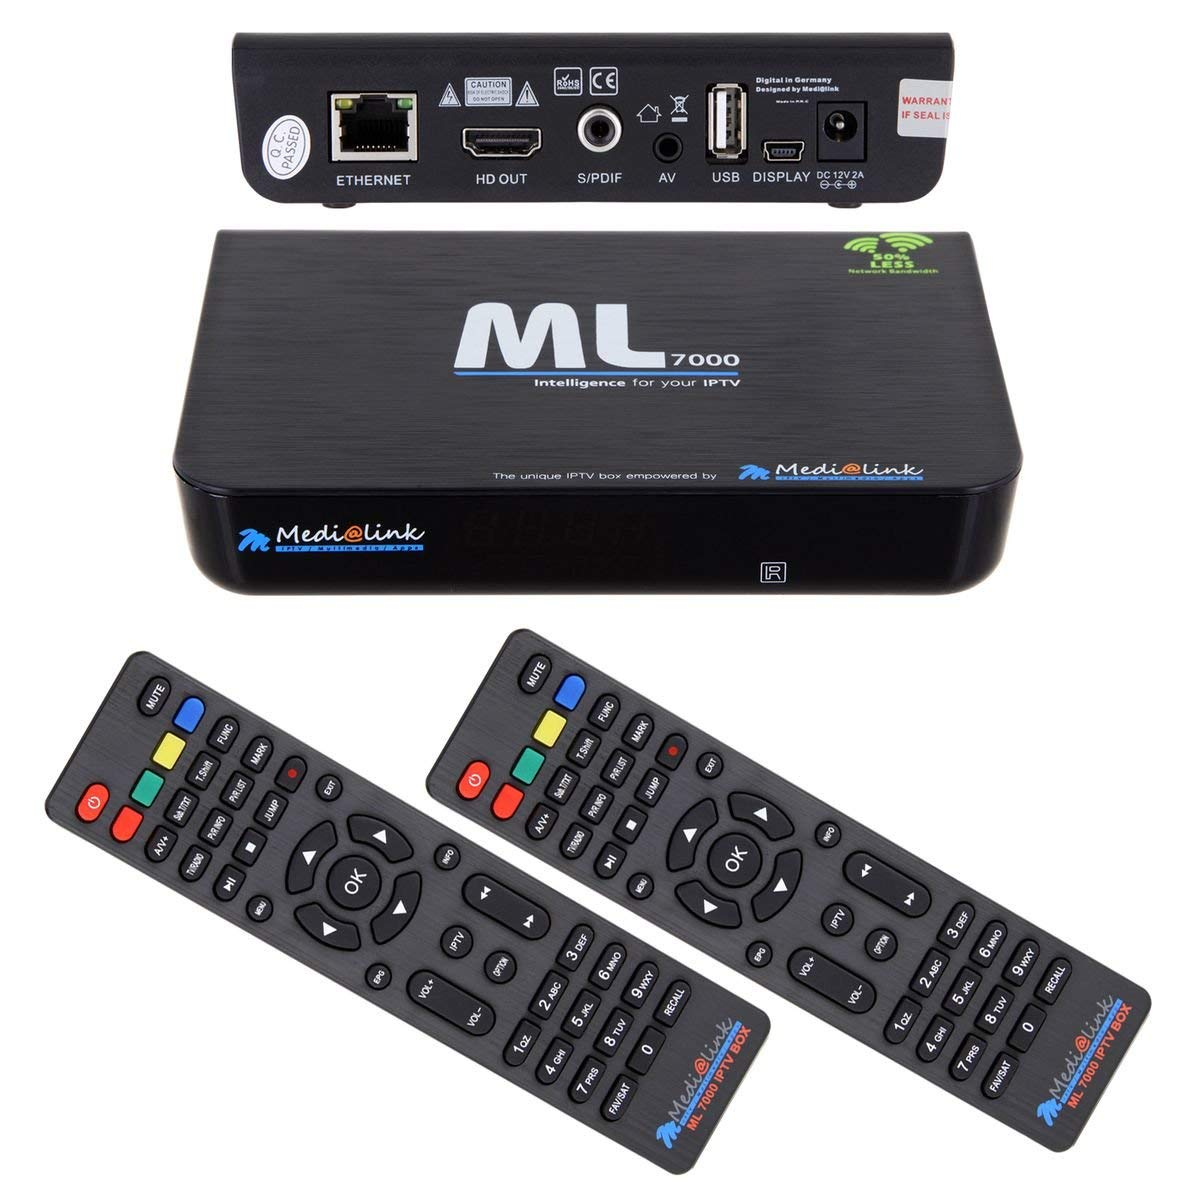 Medialink Smart Home ML 7000 IPTV Box Receiver